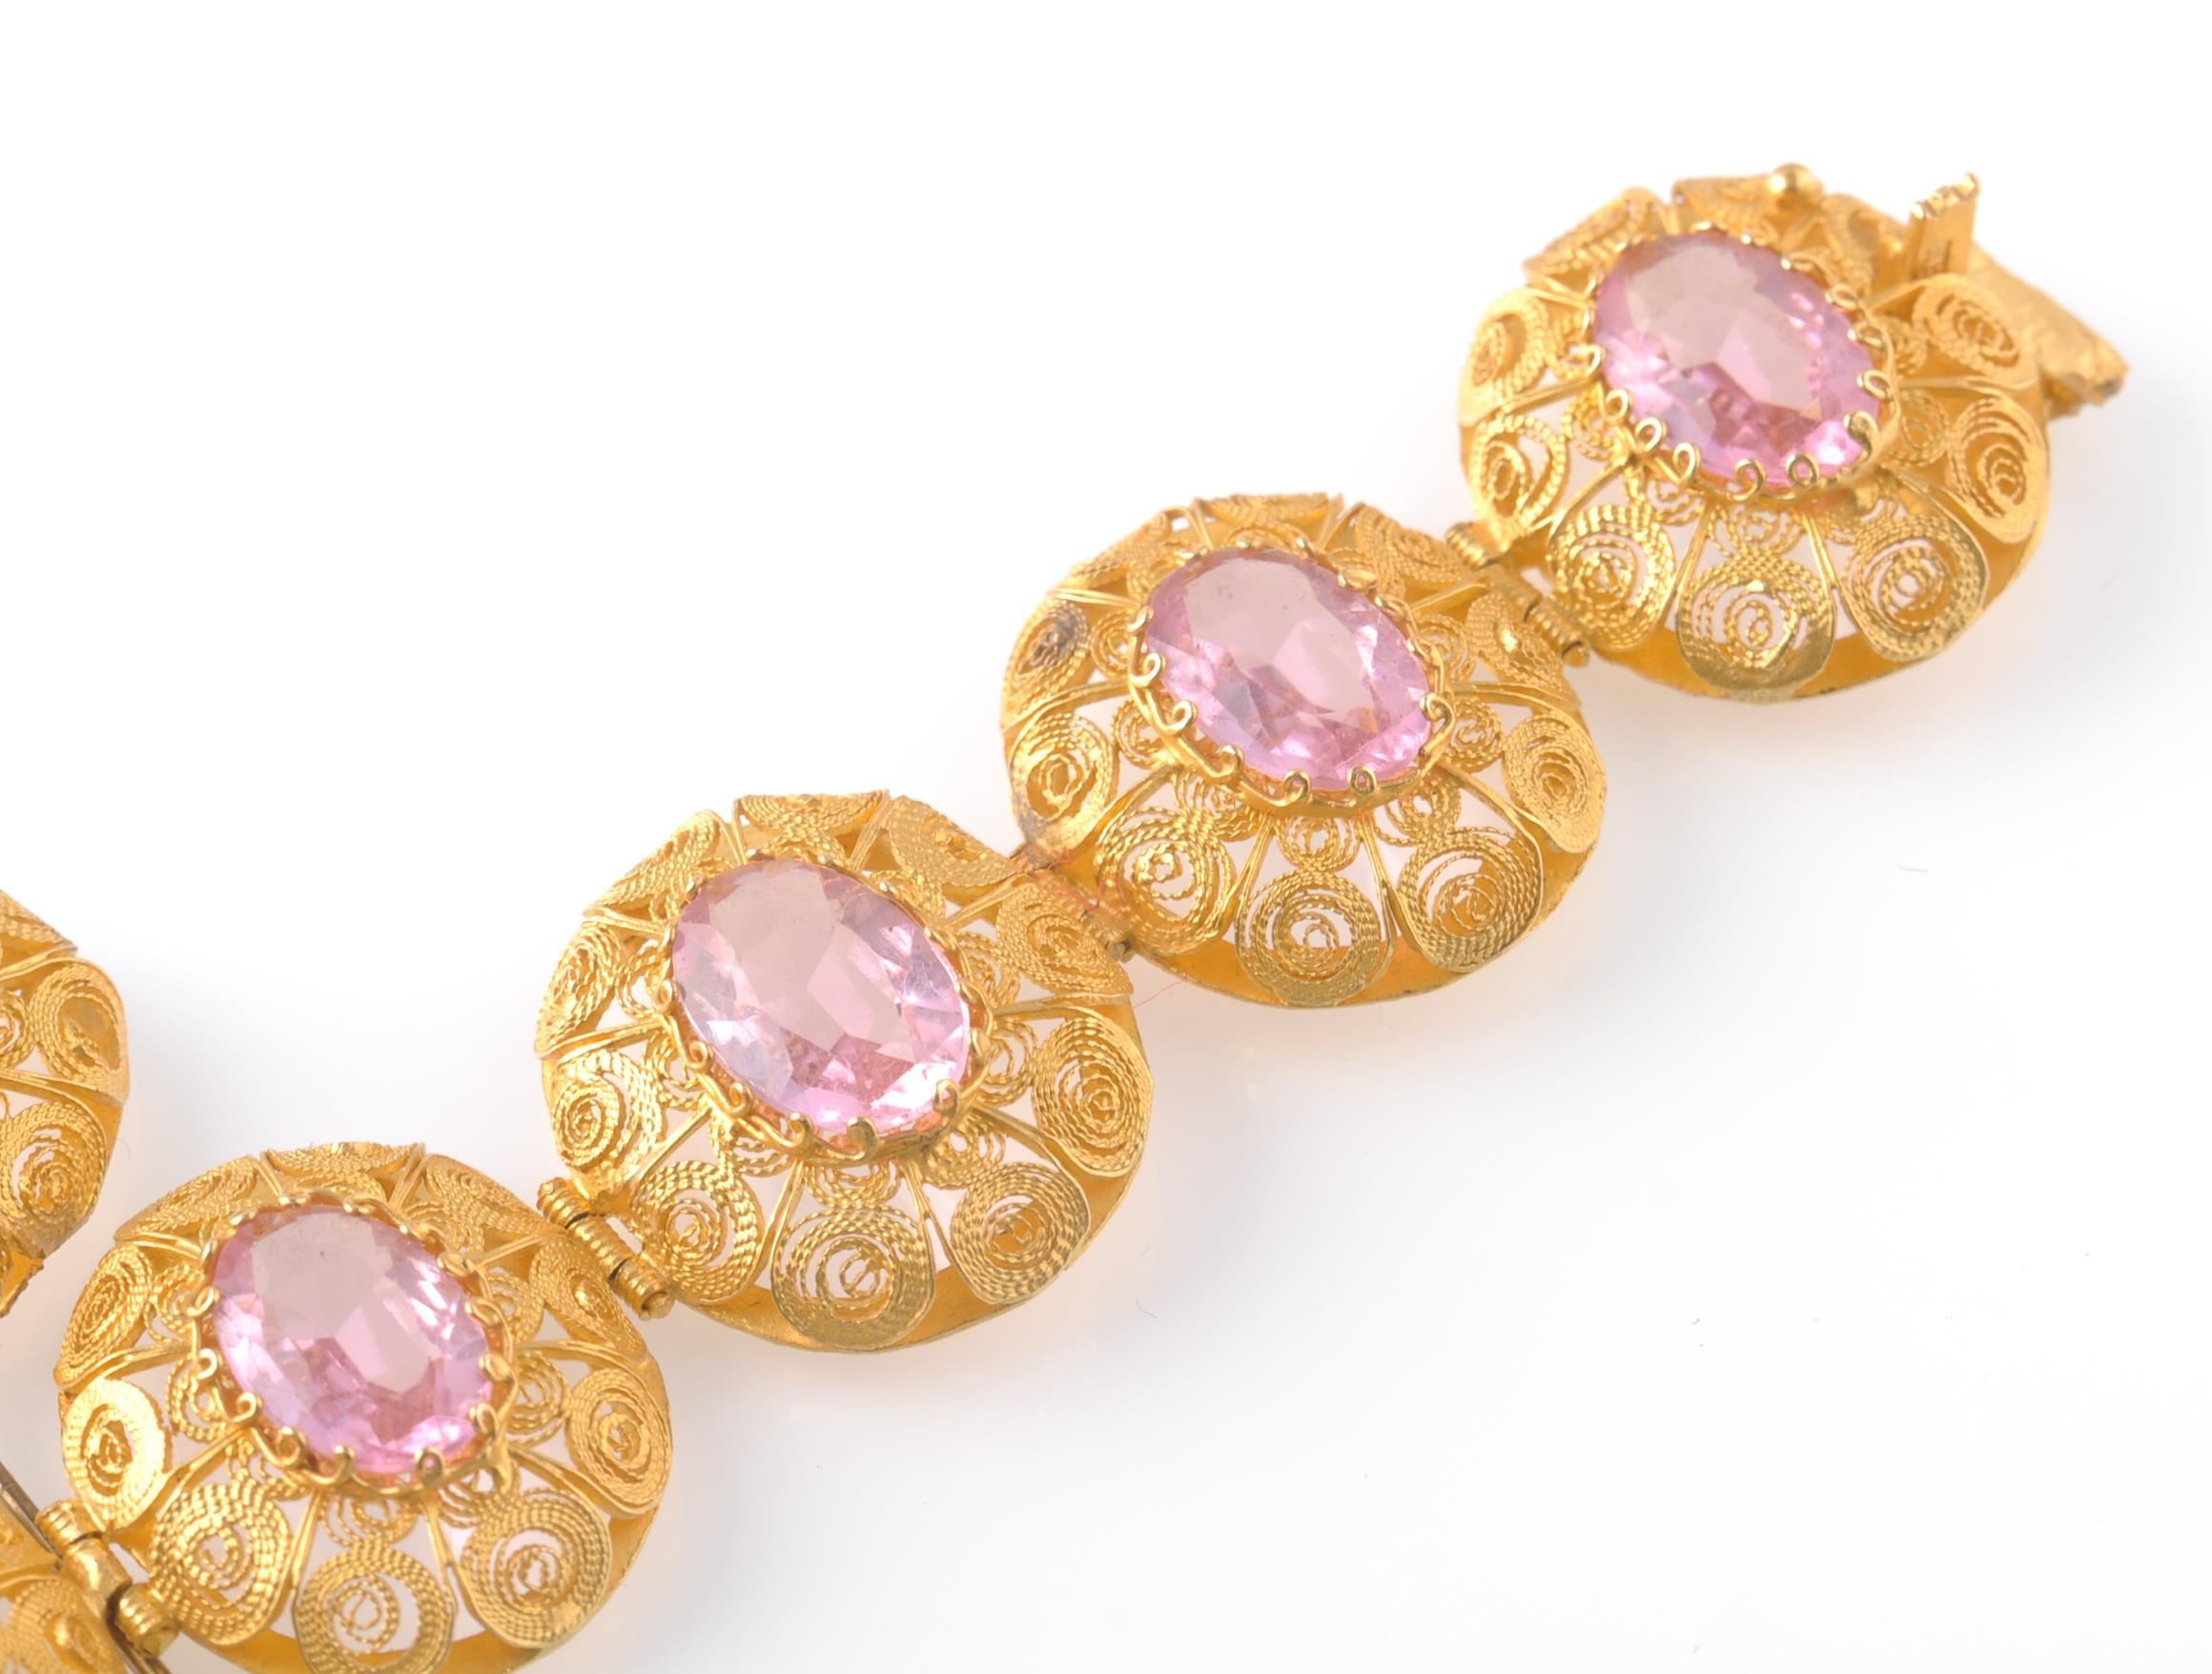 A GOLD FILIGREE AND PINK STONE BRACELET WITH PIN - Image 3 of 9